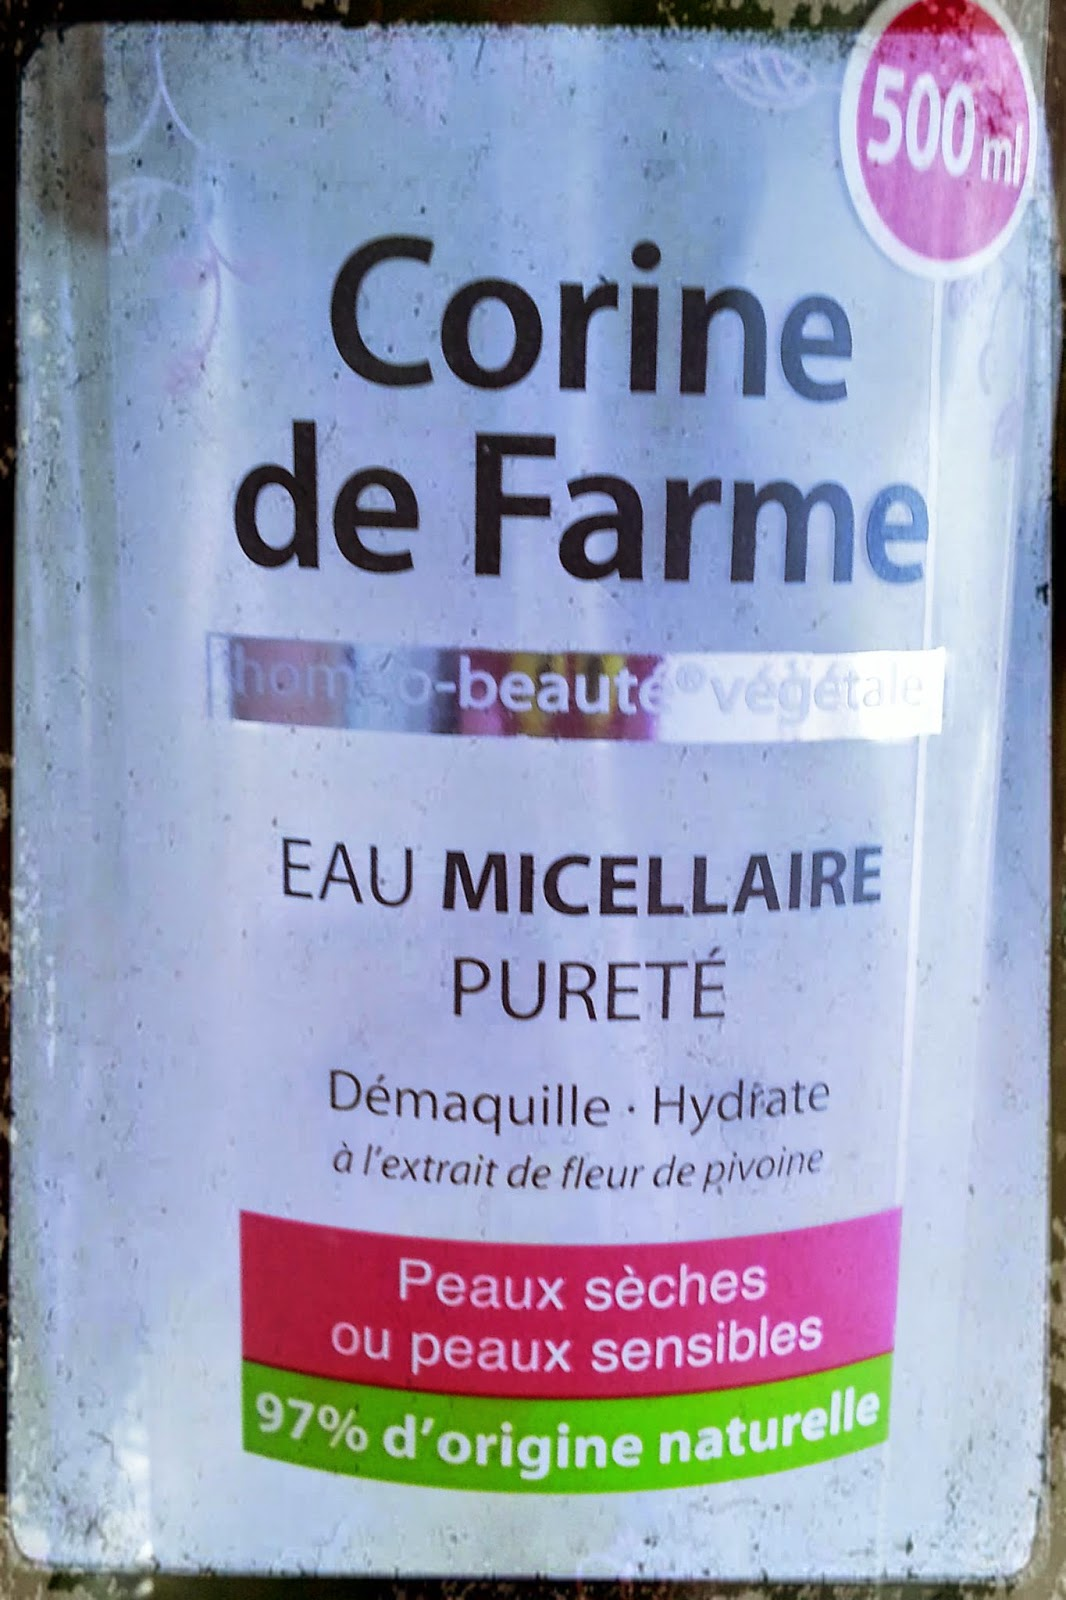 Etiquette, Packaging, 500ml